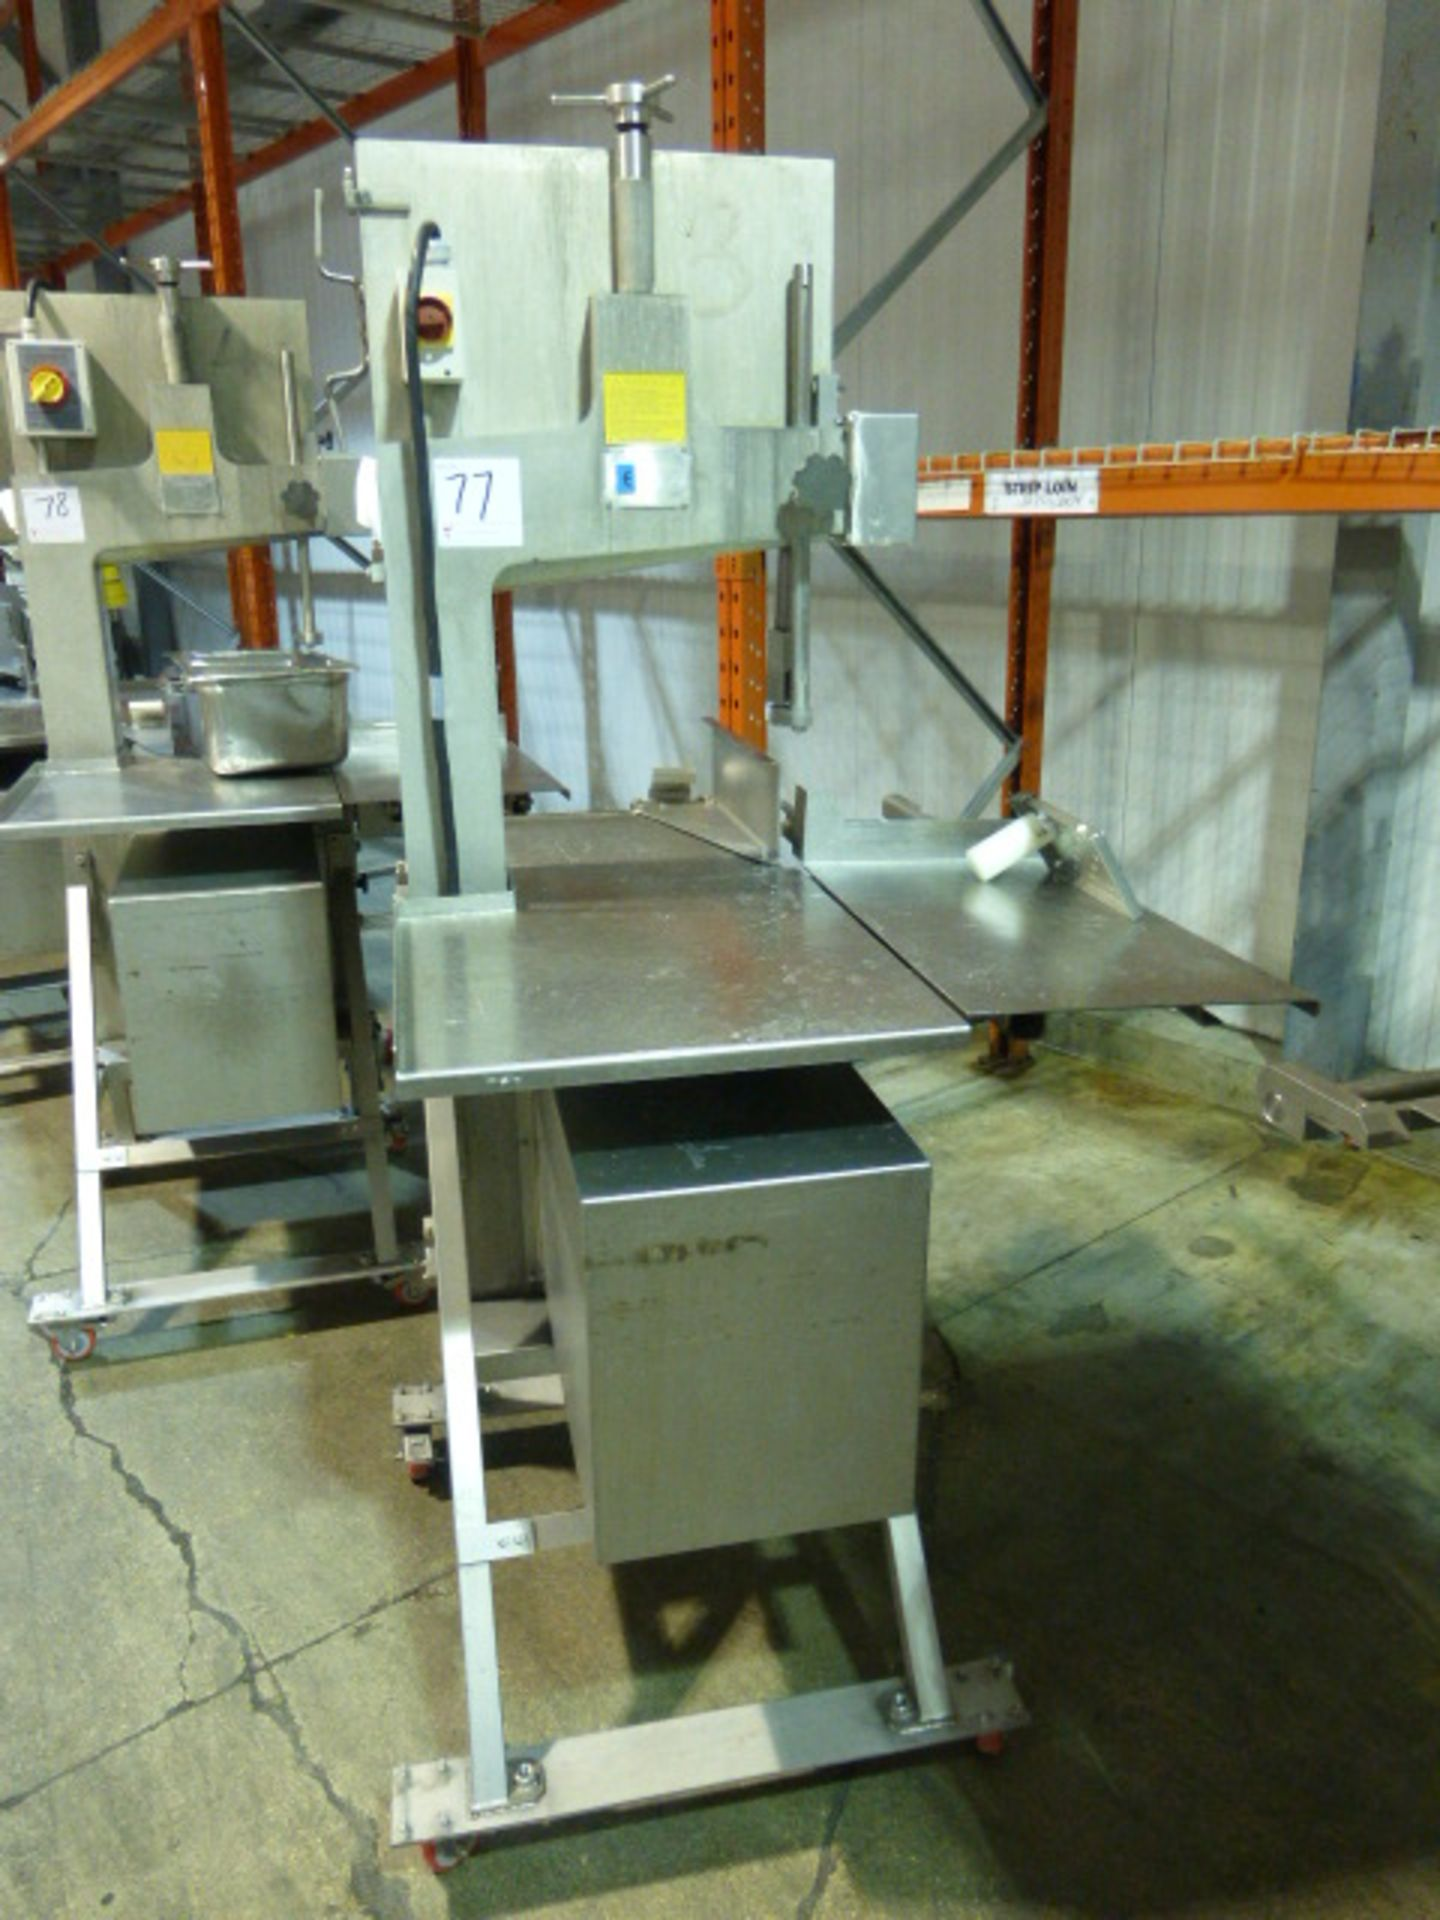 Lot 77 - AEW s/s bandsaw, model 400 Bandsaw, s/n 1335527